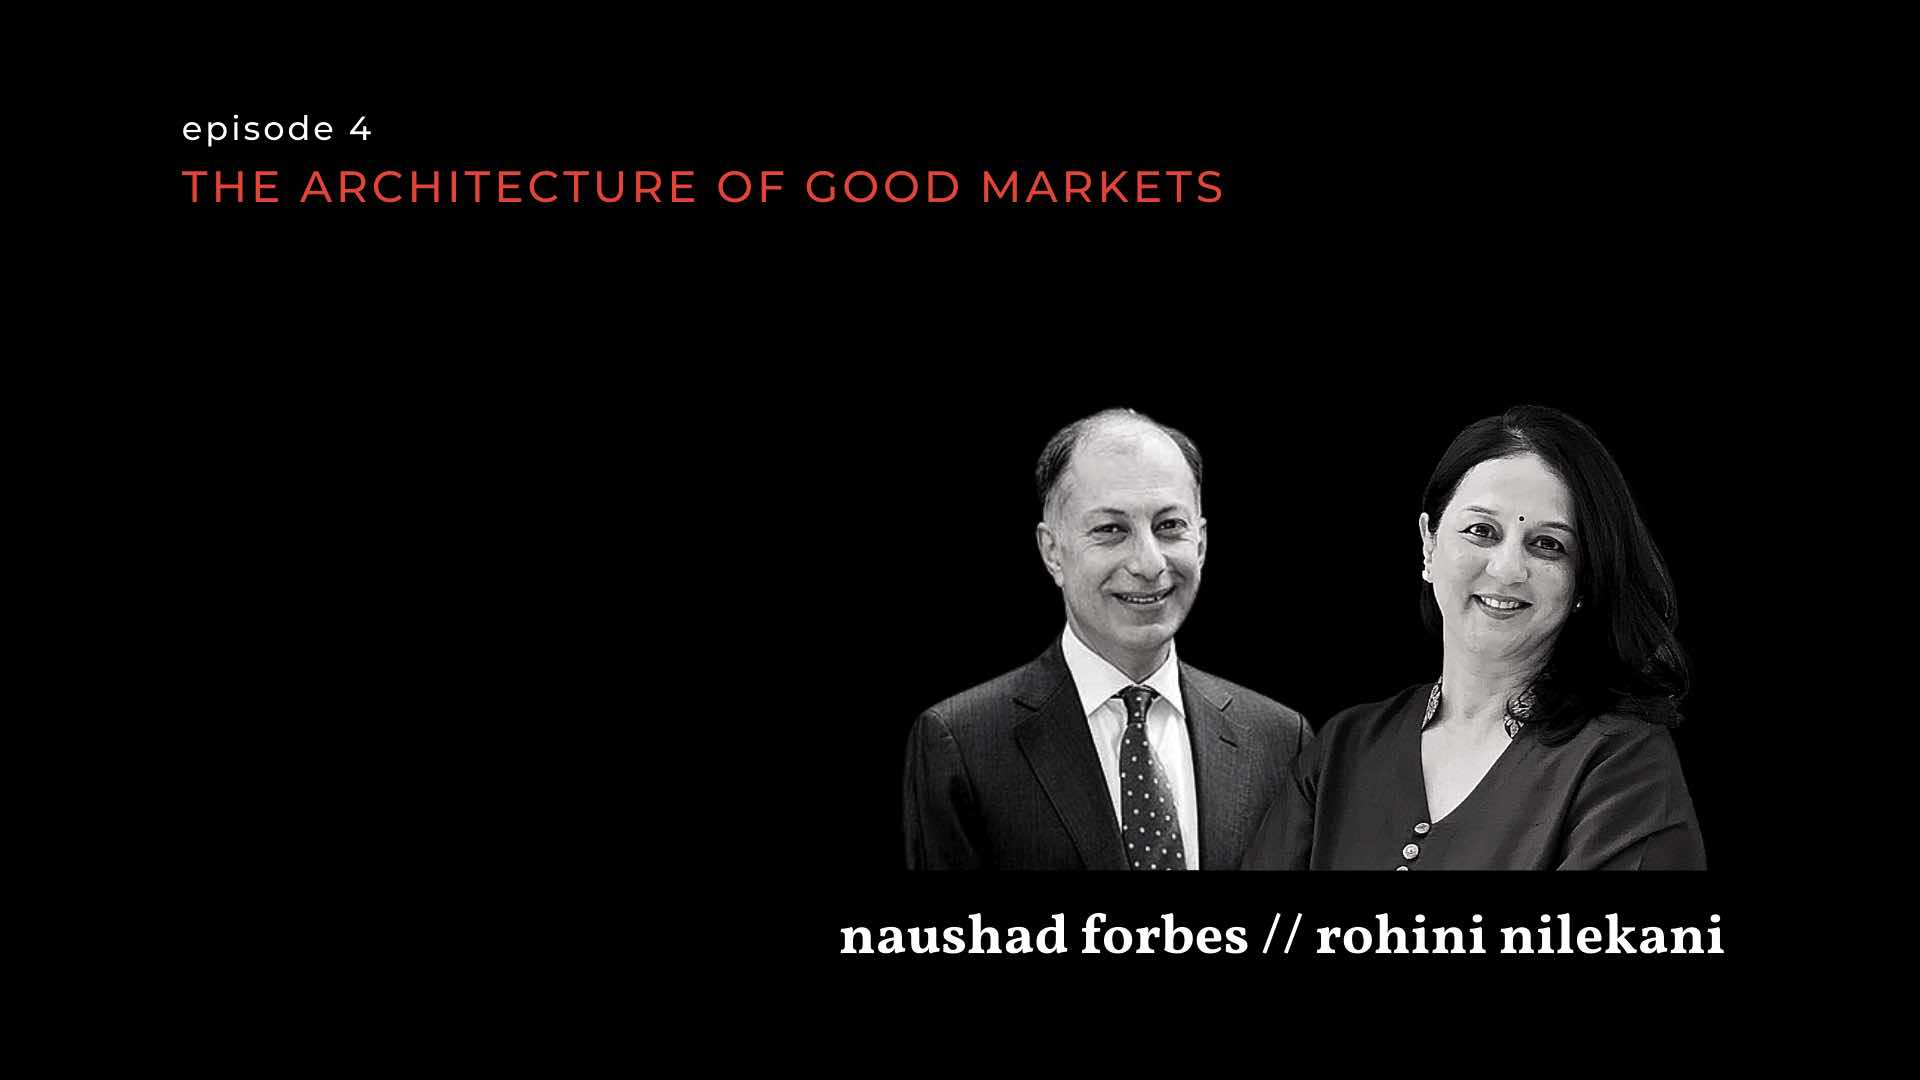 rohini nilekani and naushad forbe on markets on the contrary-inclusive growth